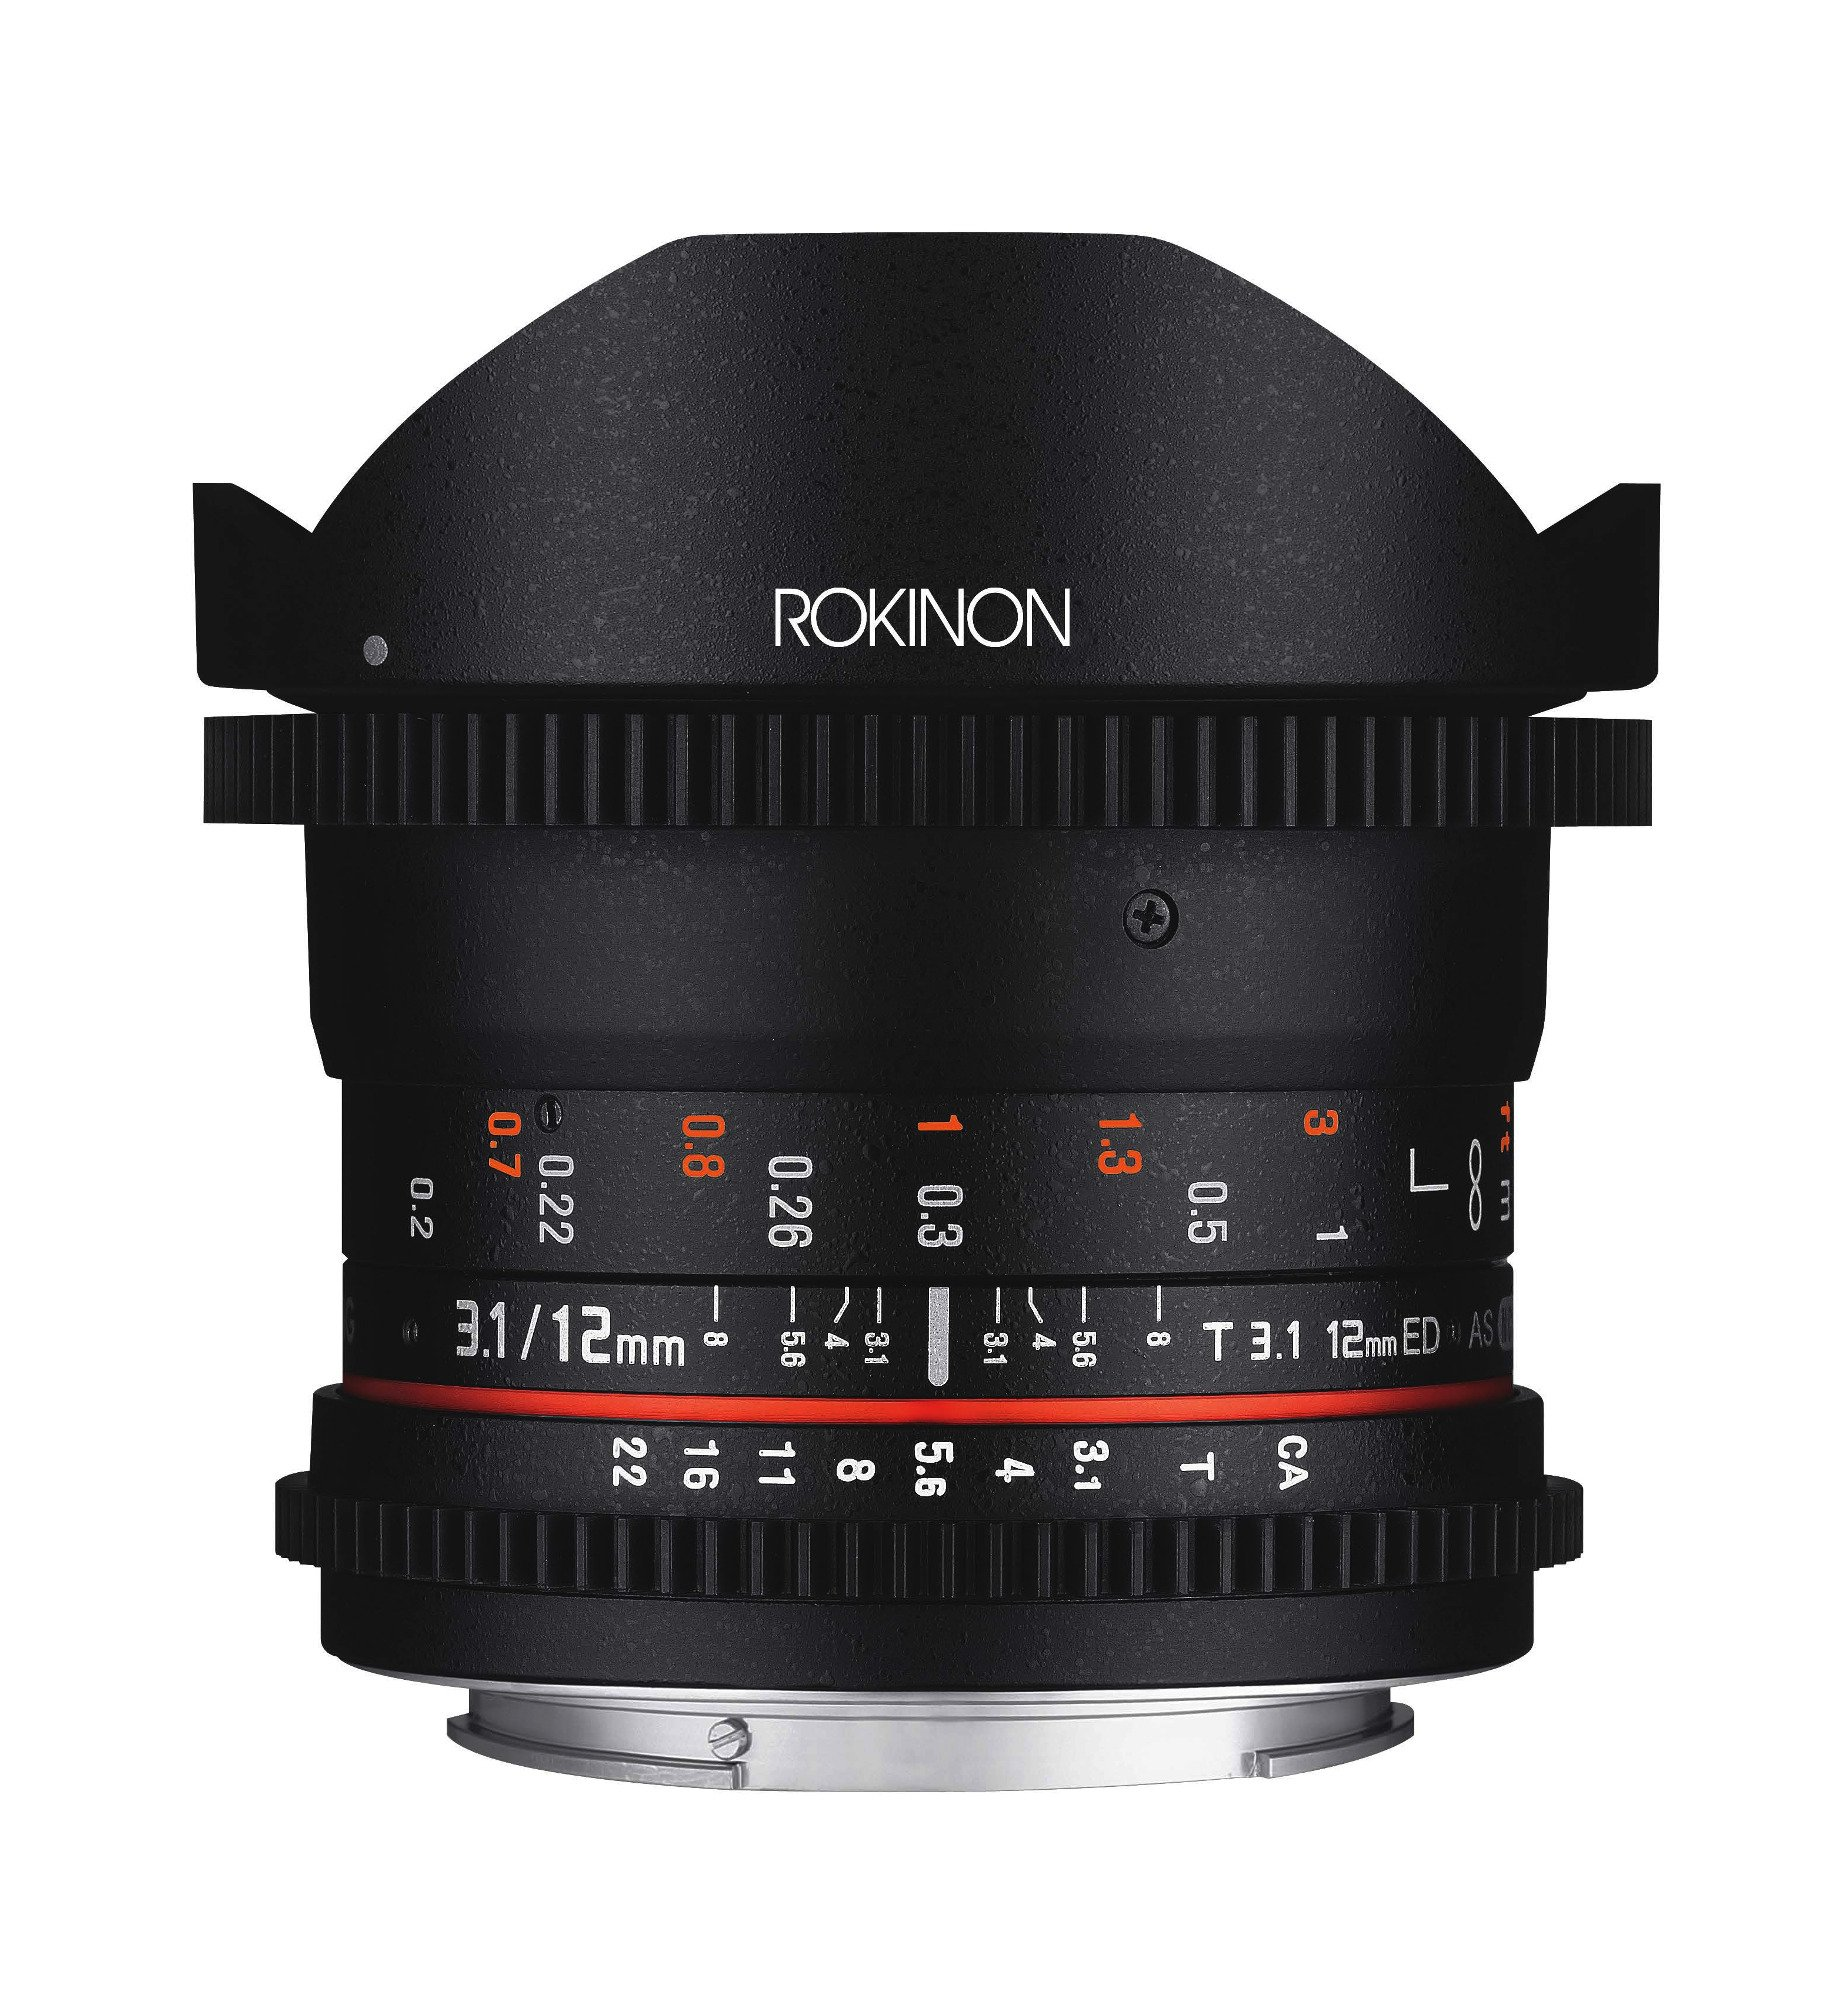 Rokinon 12mm T3.1 Full Frame Cine DS Fisheye Lens